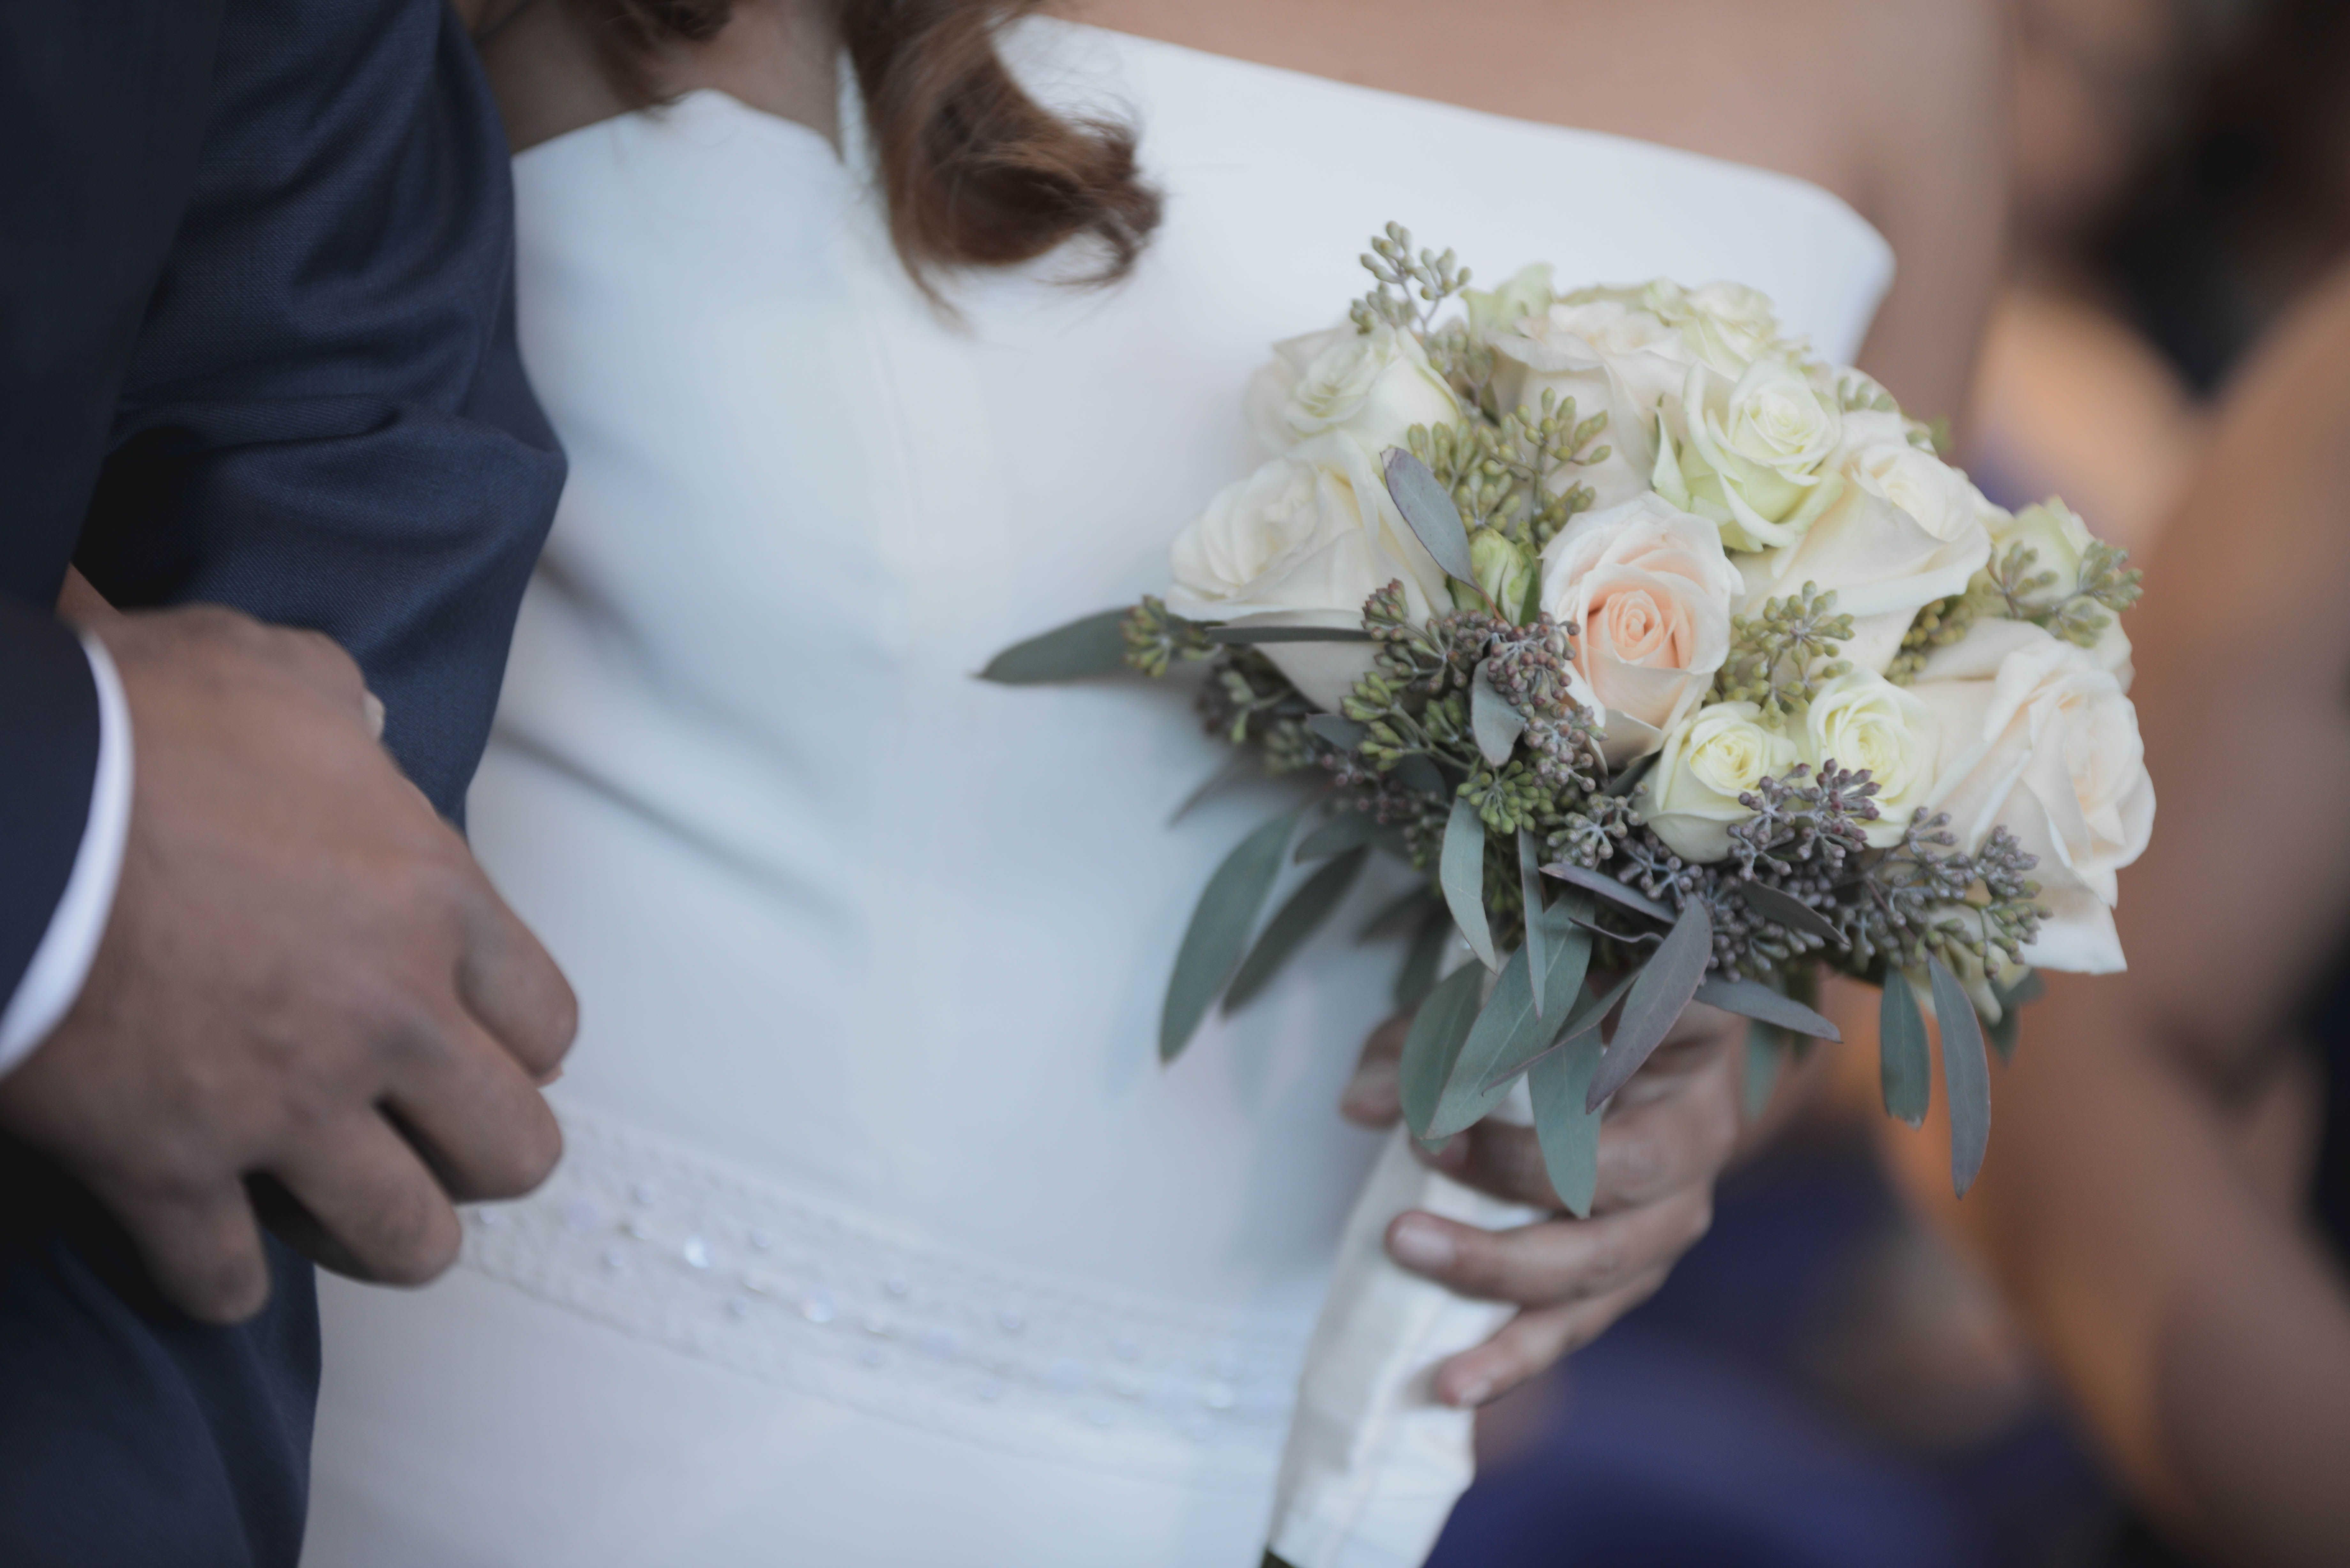 Simple And Elegant White Rose With Eucalyptus Bridal Bouquet Perfect Spring Wedding Flowers For Your